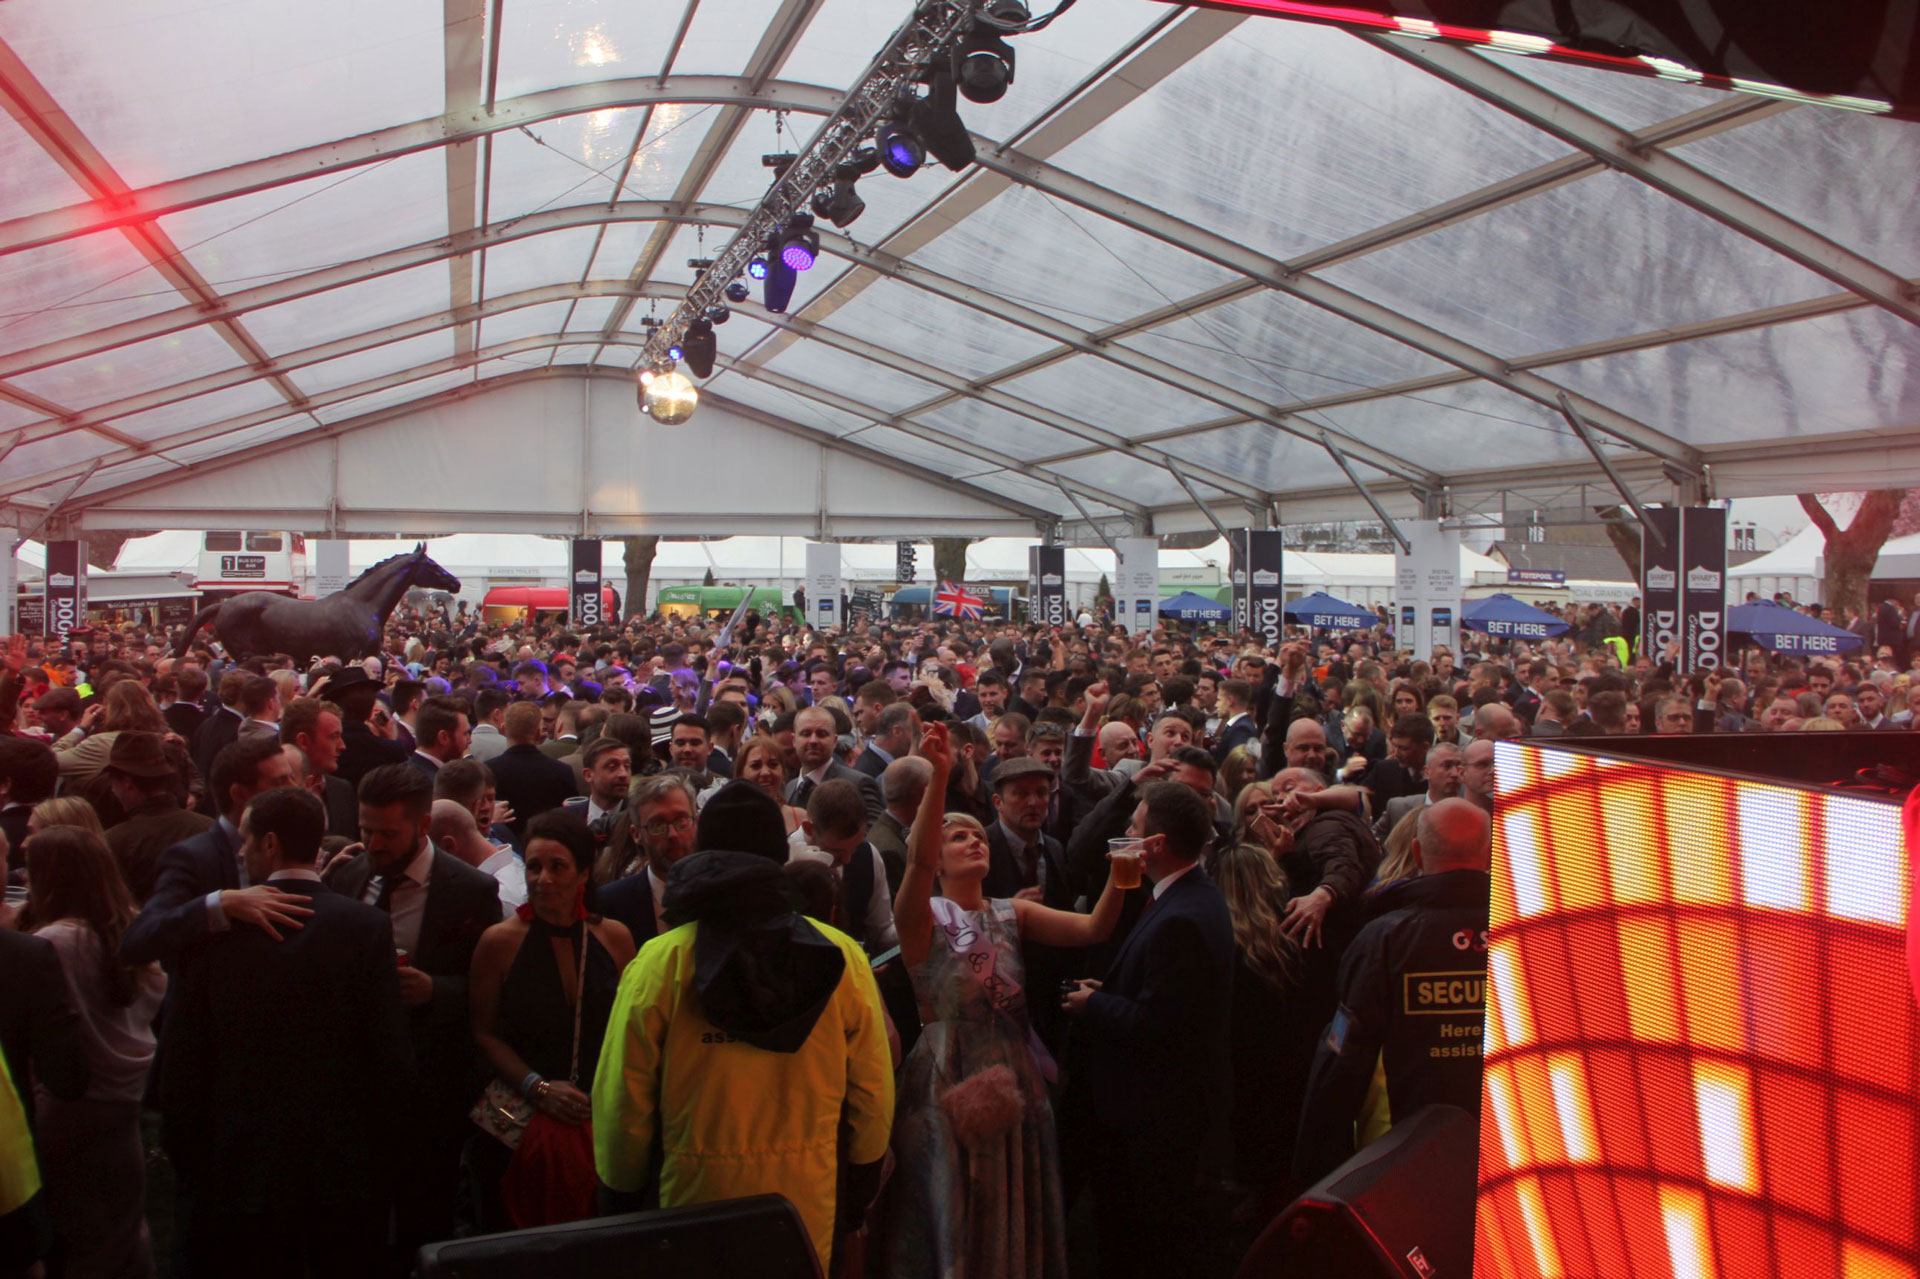 OneBigStar Aintree Racecourse High Profile Sporting Events